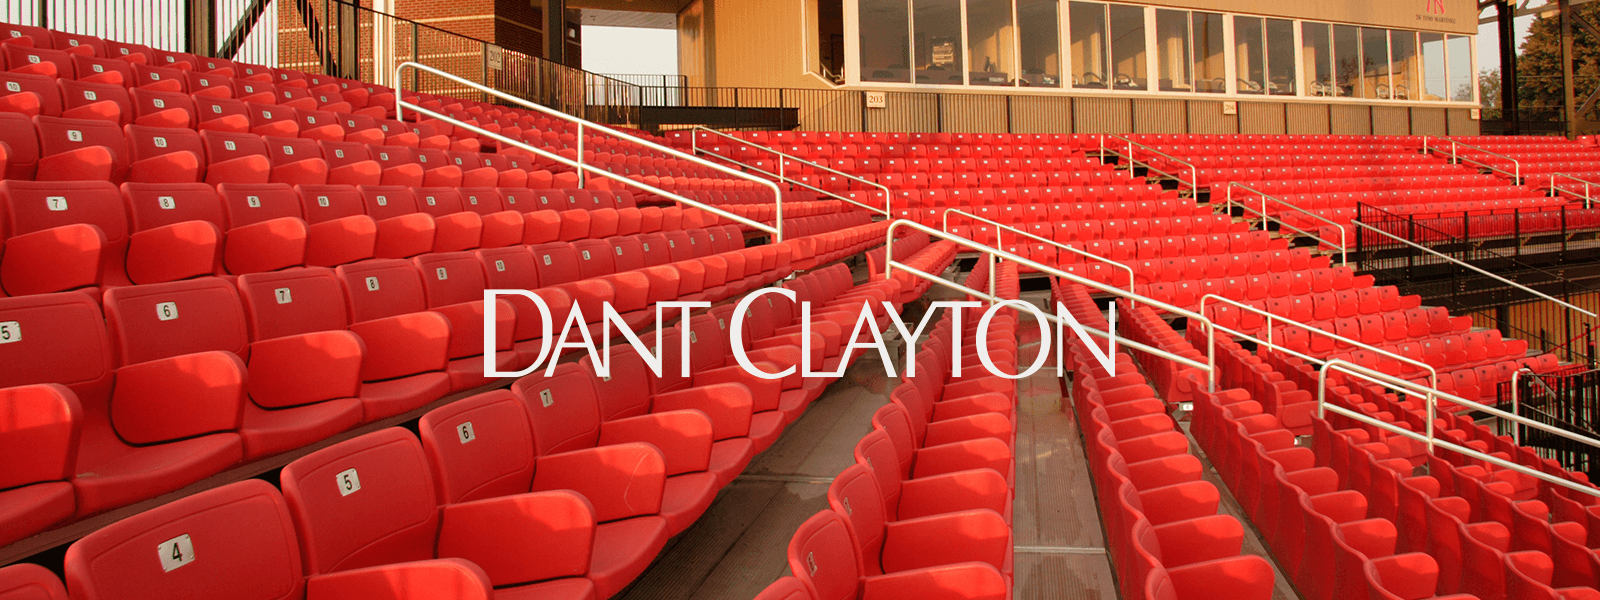 dant-clayton-header